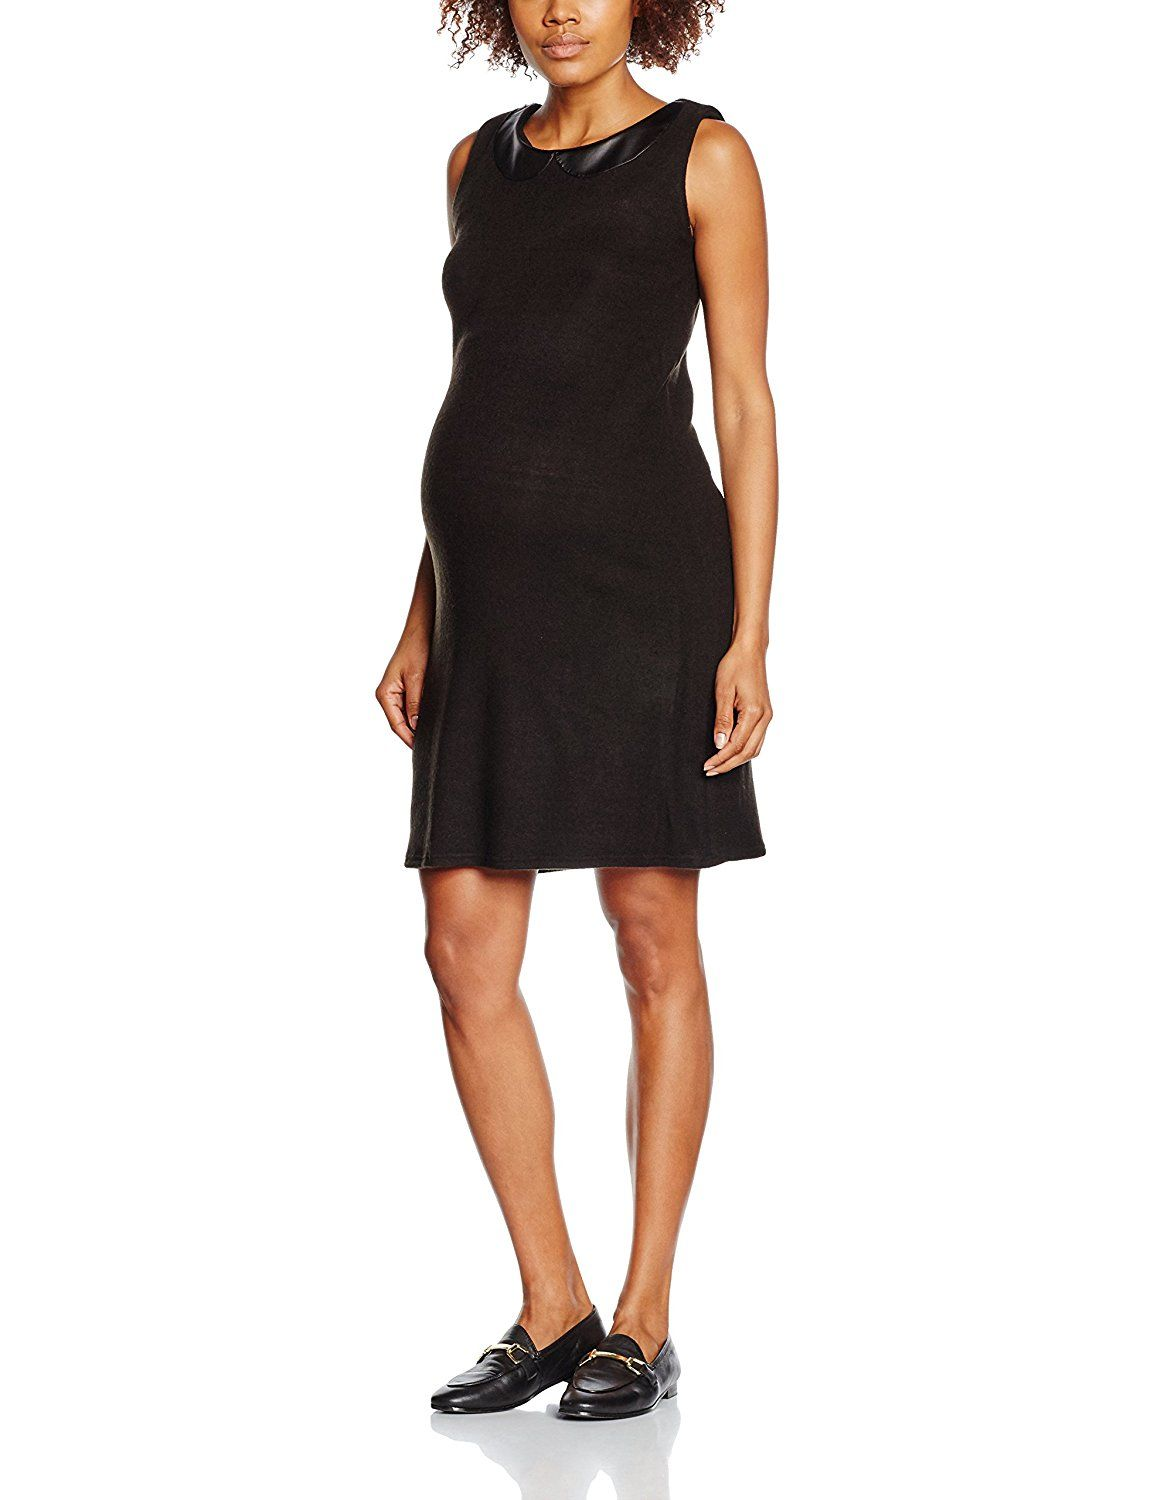 Details about 12 black inconnu womens maternity dress new 12 black inconnu womens maternity dress new ombrellifo Images